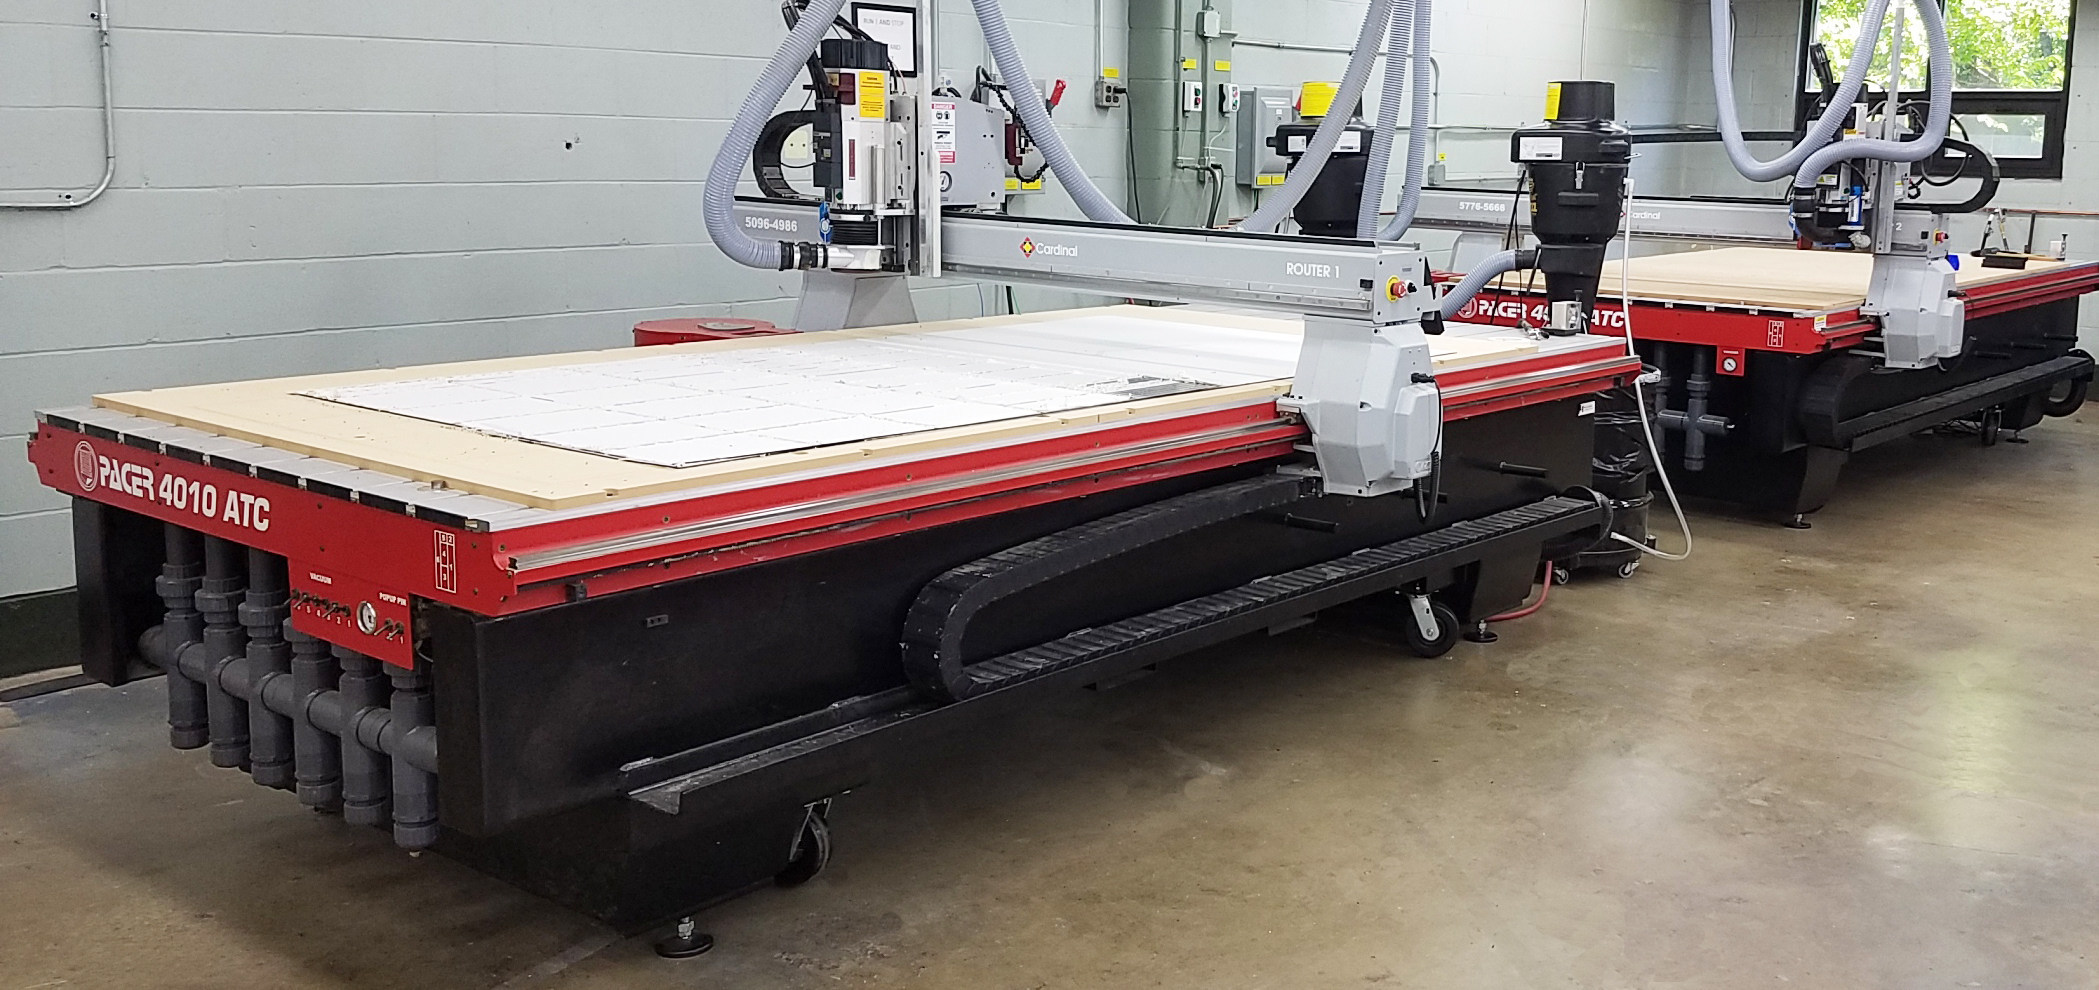 AXYZ International Pacer CNC Routers Improve Work Flow at